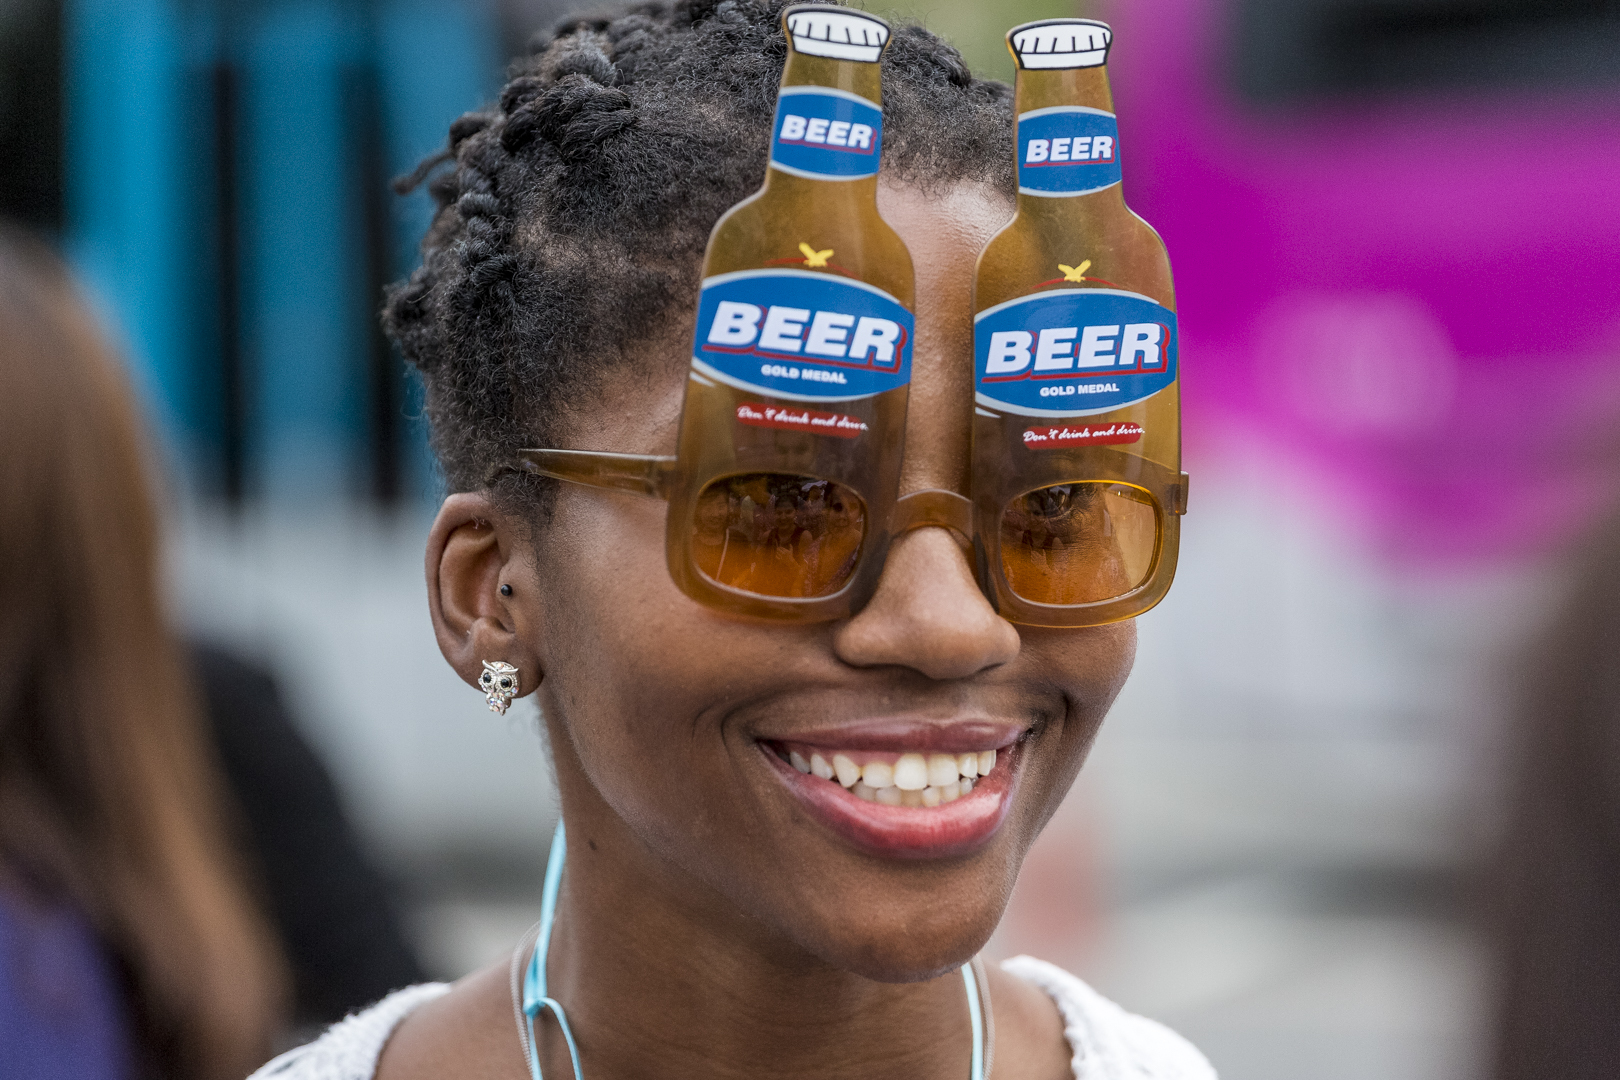 Drink beer, be happy at the Great Korean Beer Festival